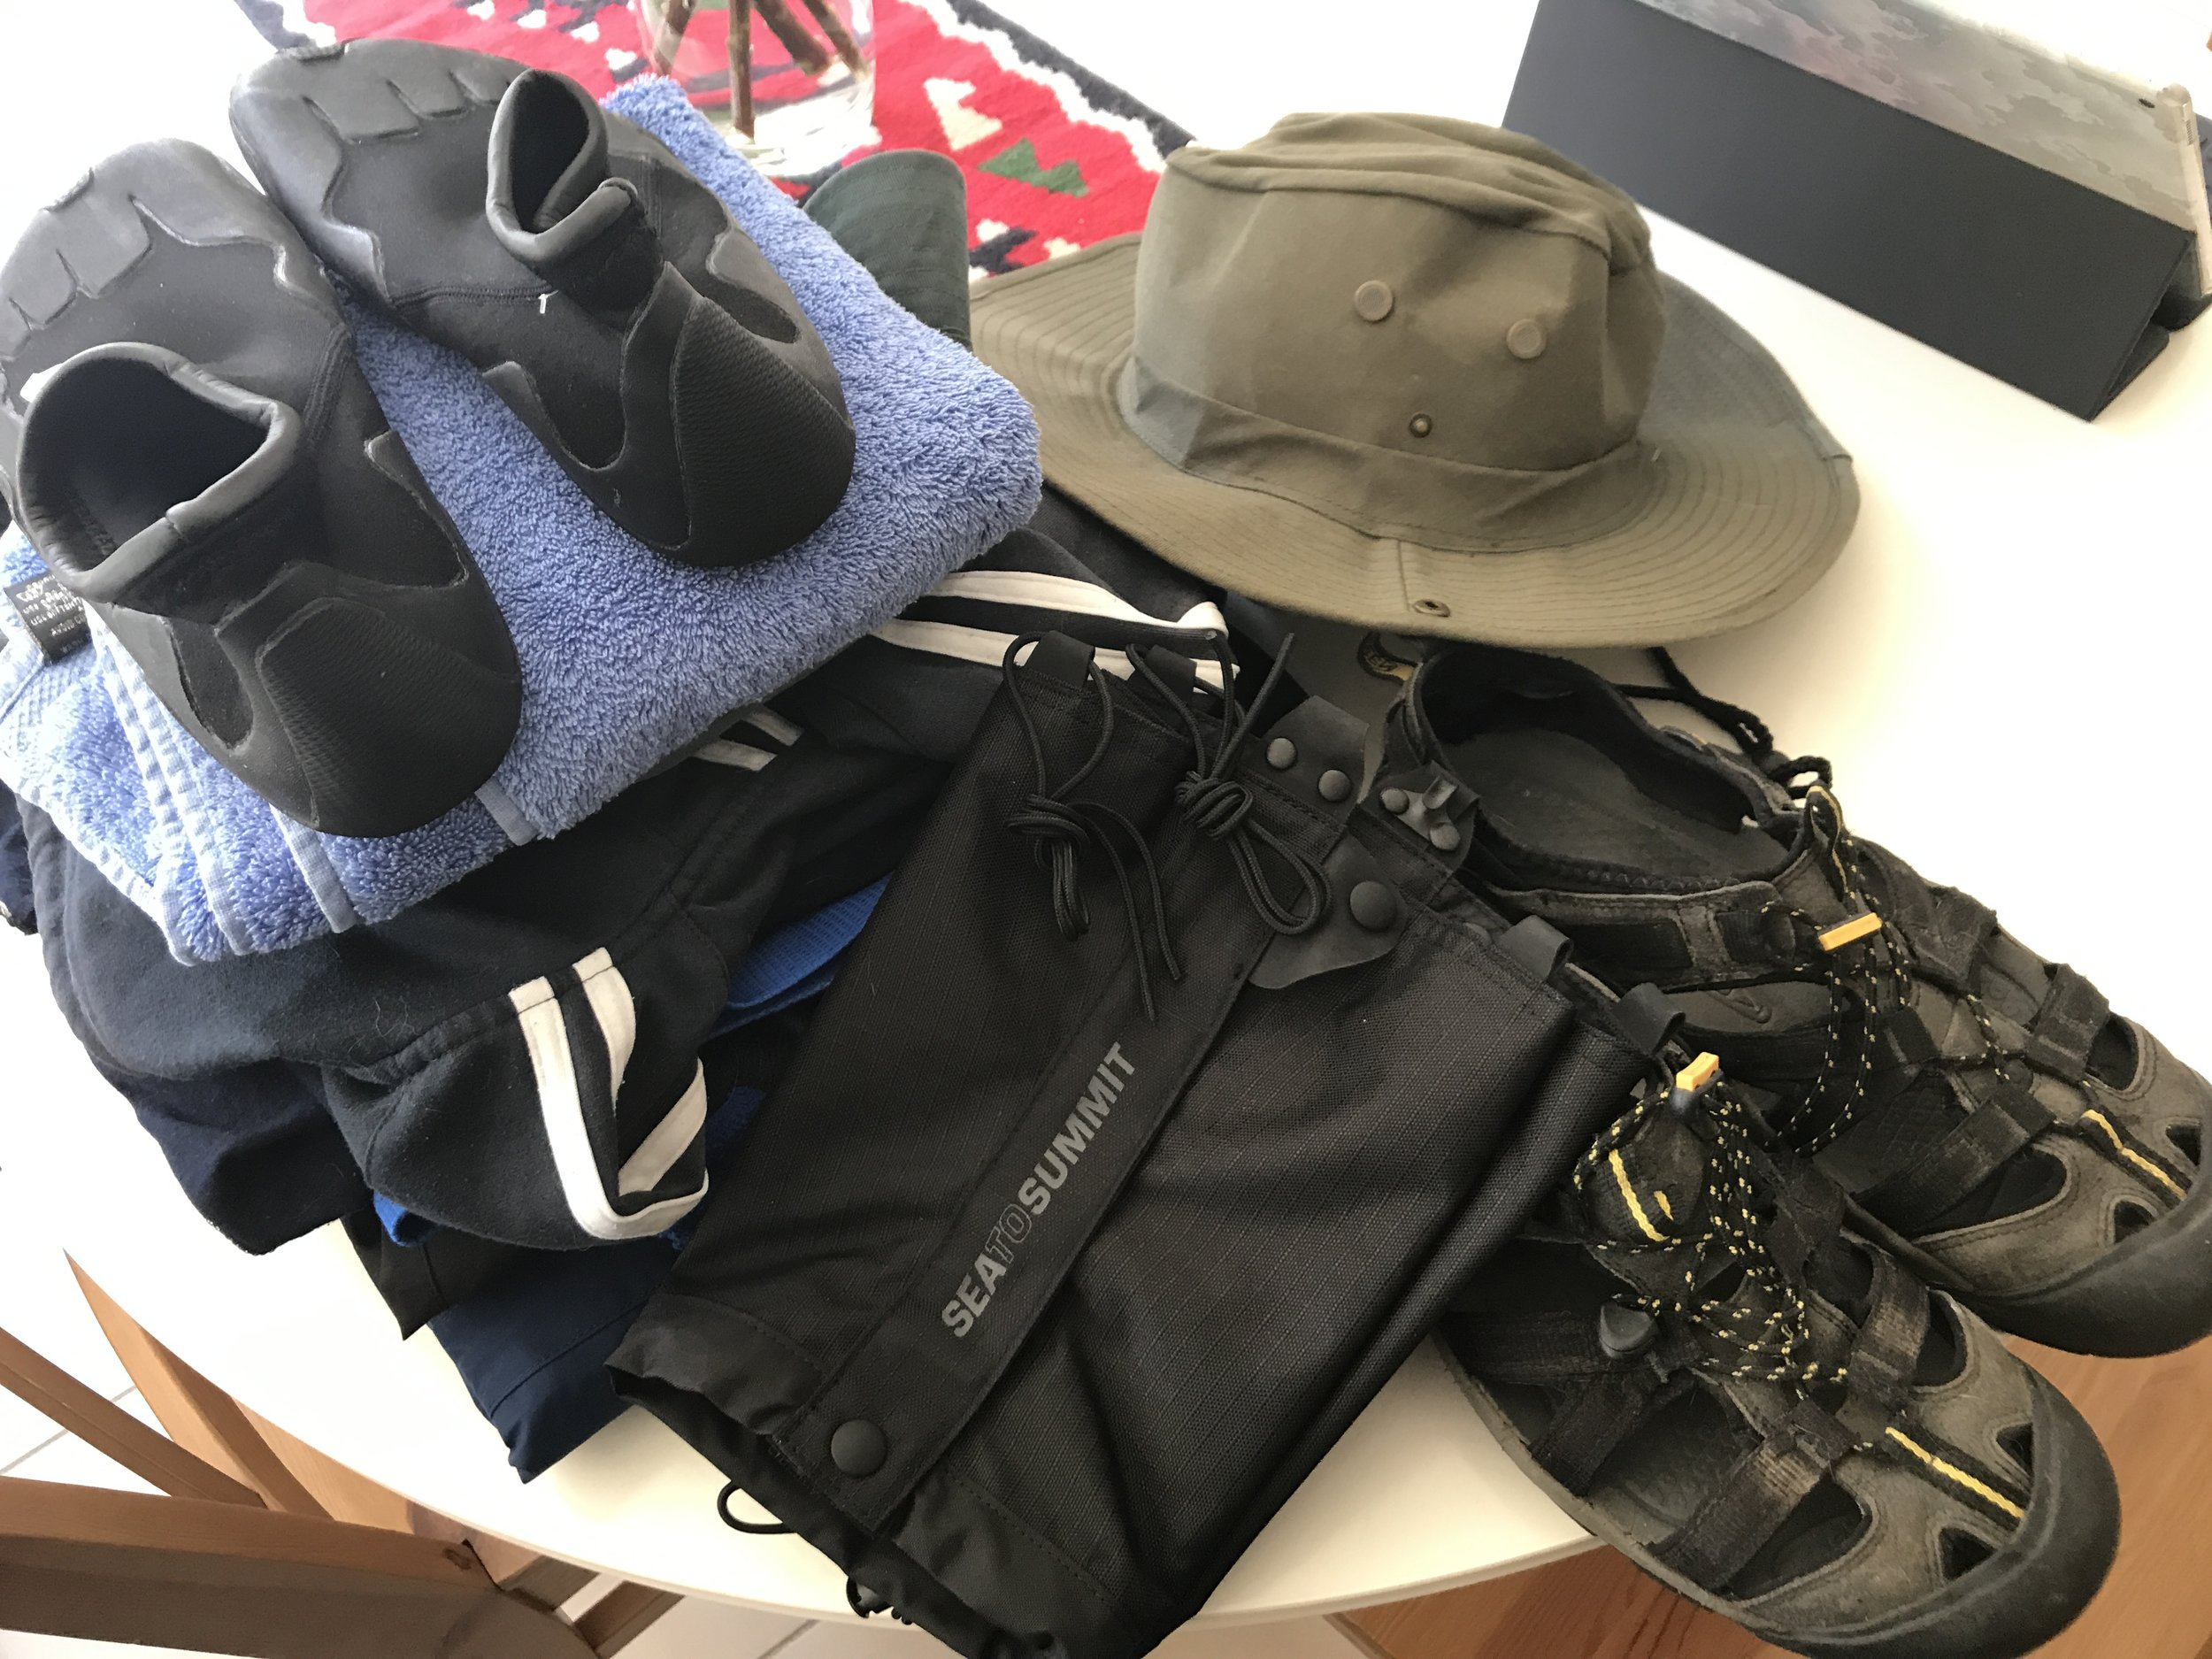 Travel packing clothes